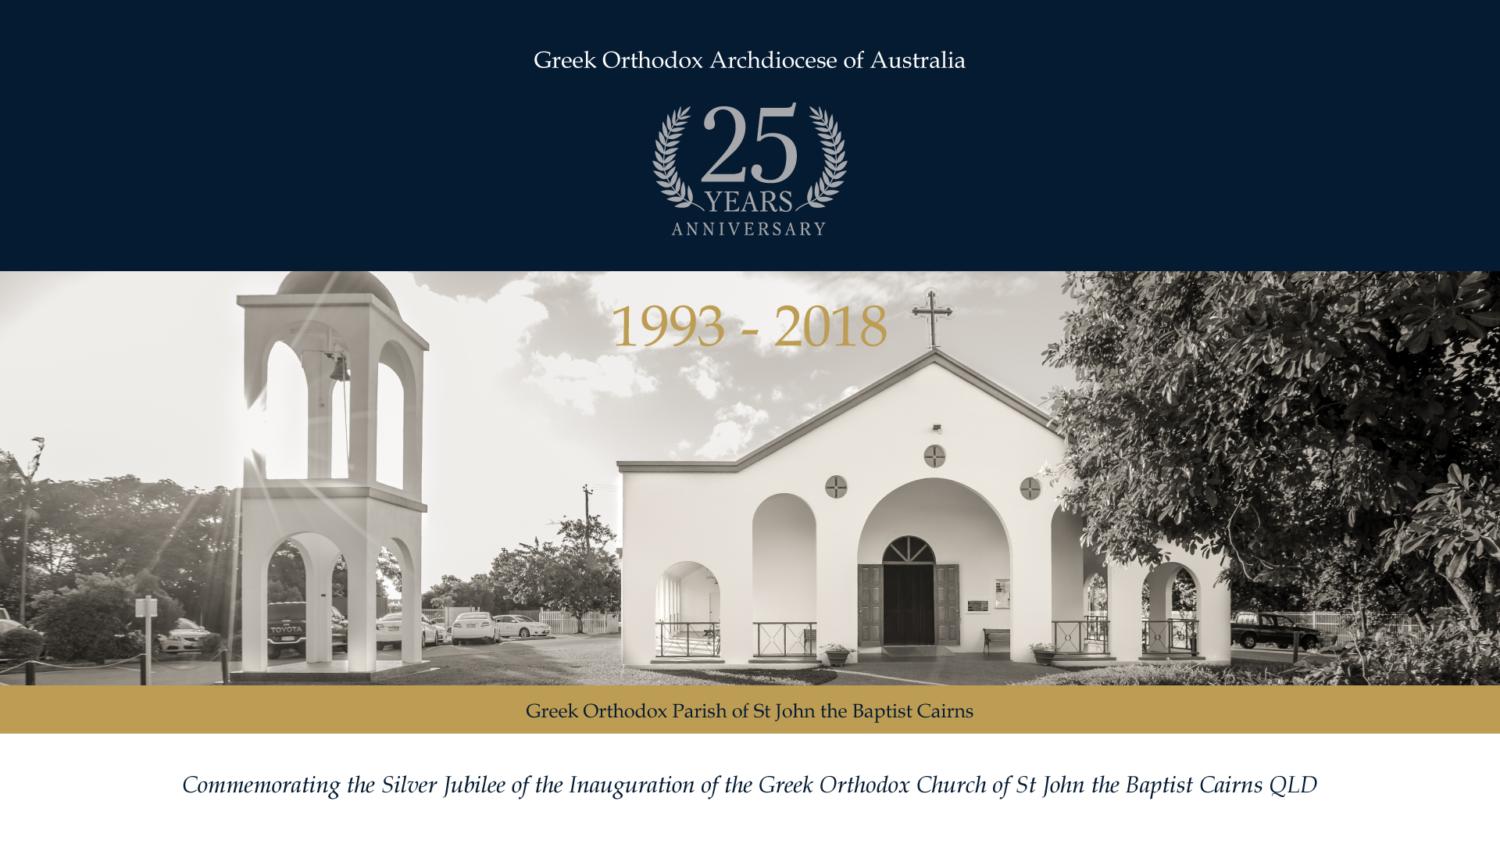 25 Year Anniversary of the Inauguration of the Greek Orthodox Church of St John the Baptist Cairns